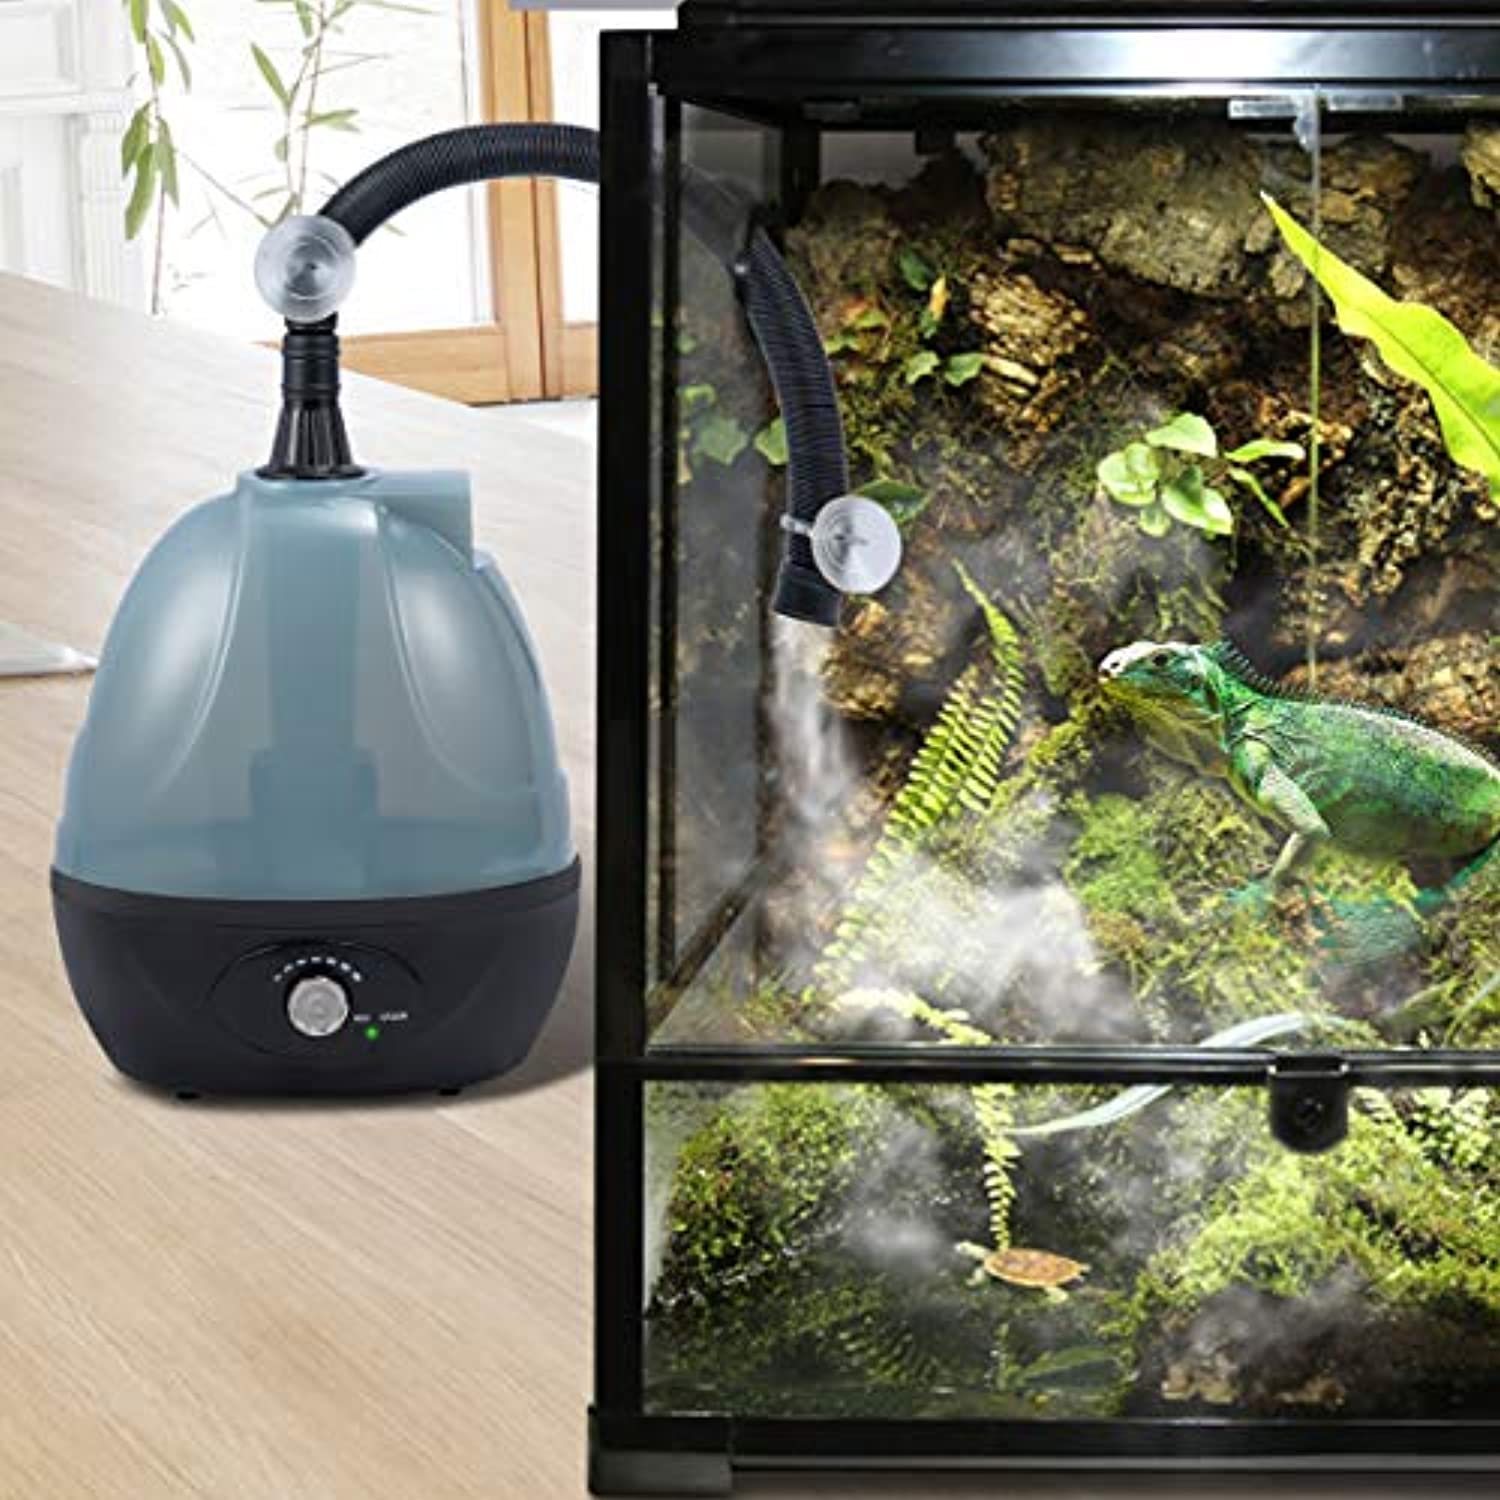 Classier: Buy BETAZOOER BETAZOOER Reptile Humidifier, Reptile Fogger with Extension Tube, Suitable for Reptiles Amphibians and Terrarium (2.5 Liter Tank)